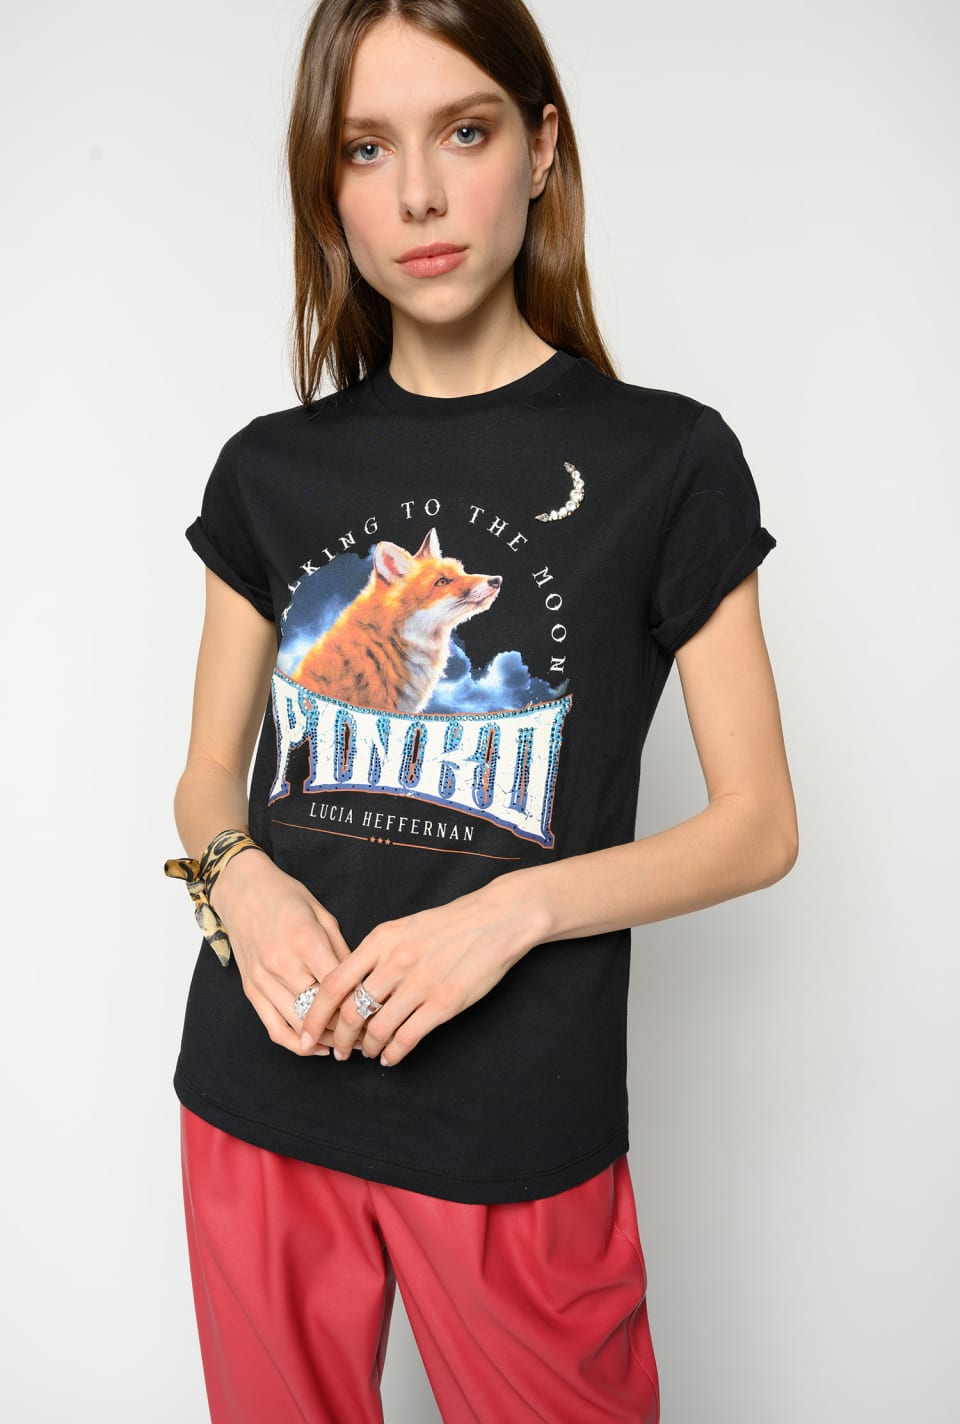 「Talking To The Moon」 Tシャツ - Pinko